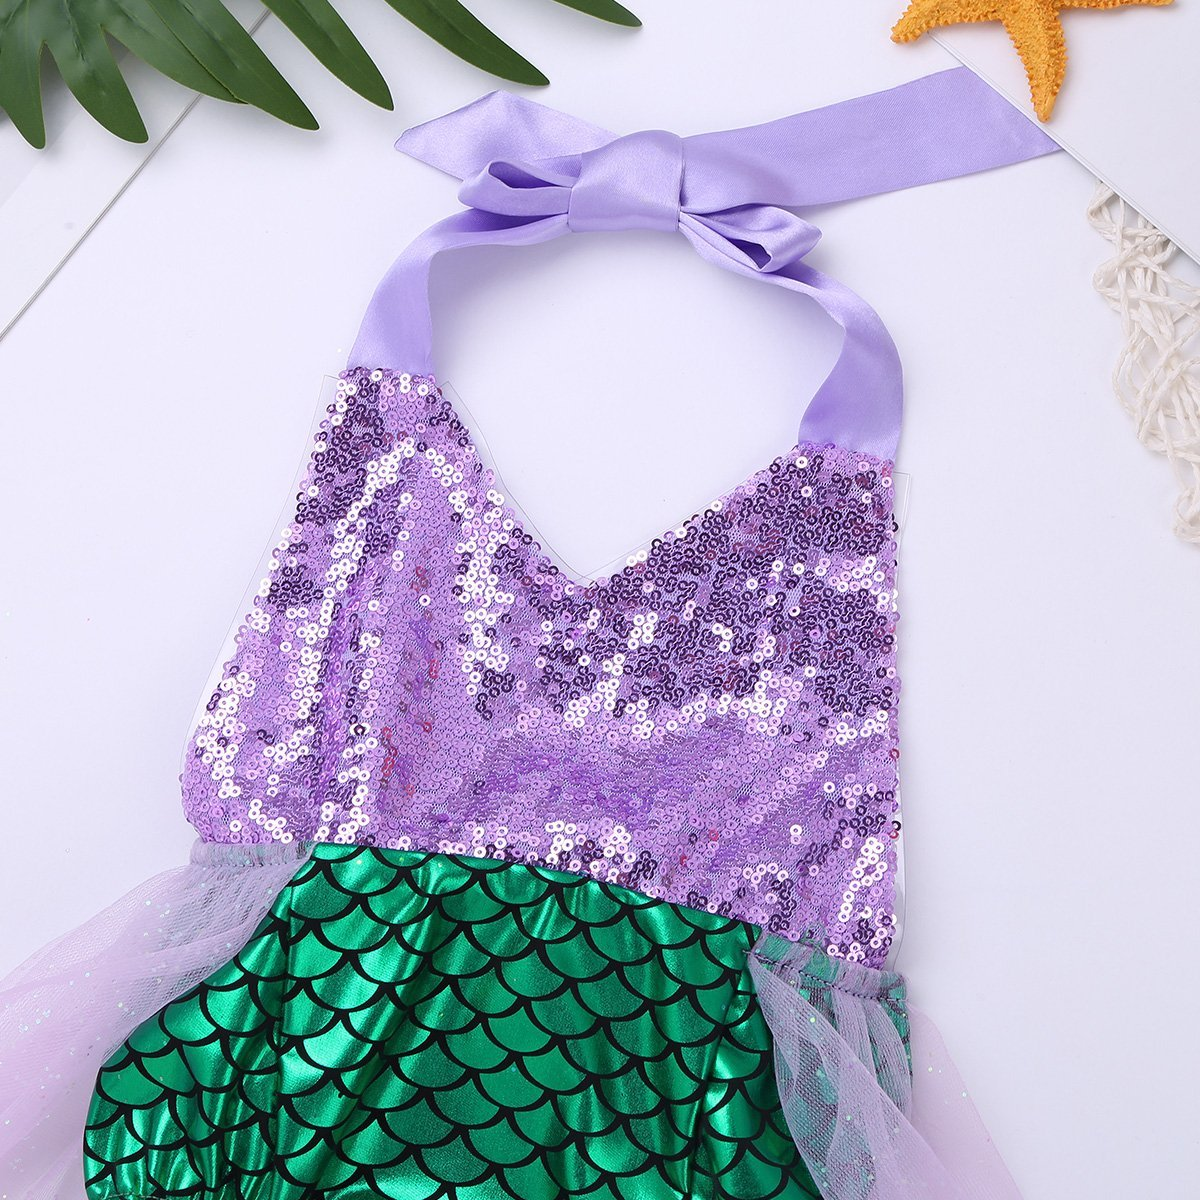 FEESHOW Toddler Baby Girls Mermaid Princess Bikini Swimsuit Halter Romper Tutu Fancy Dress Costumes Green 9-12 Months by FEESHOW (Image #5)